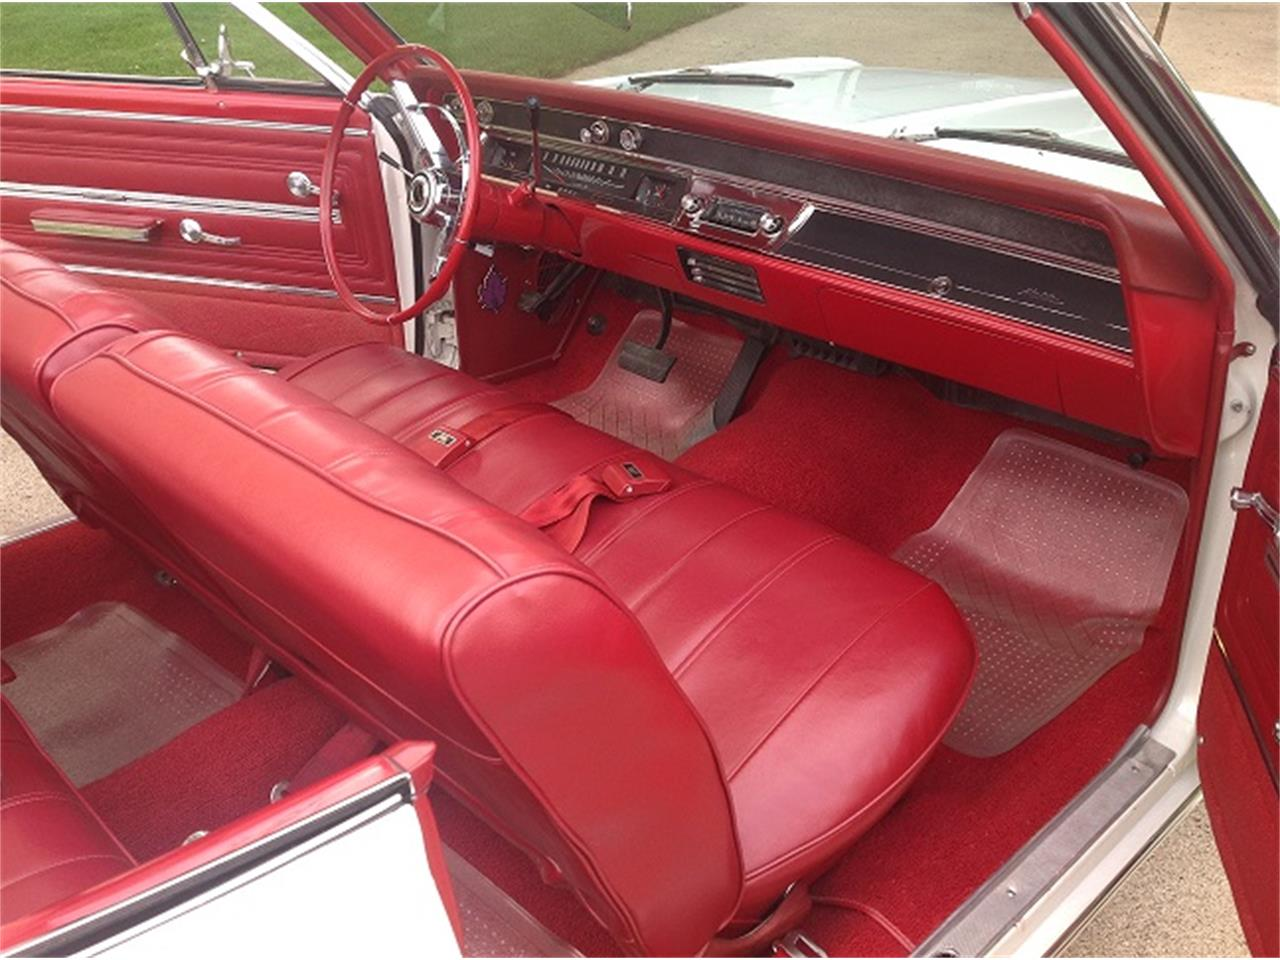 Large Picture of 1966 Chevrolet Malibu - $37,900.00 - N8G5